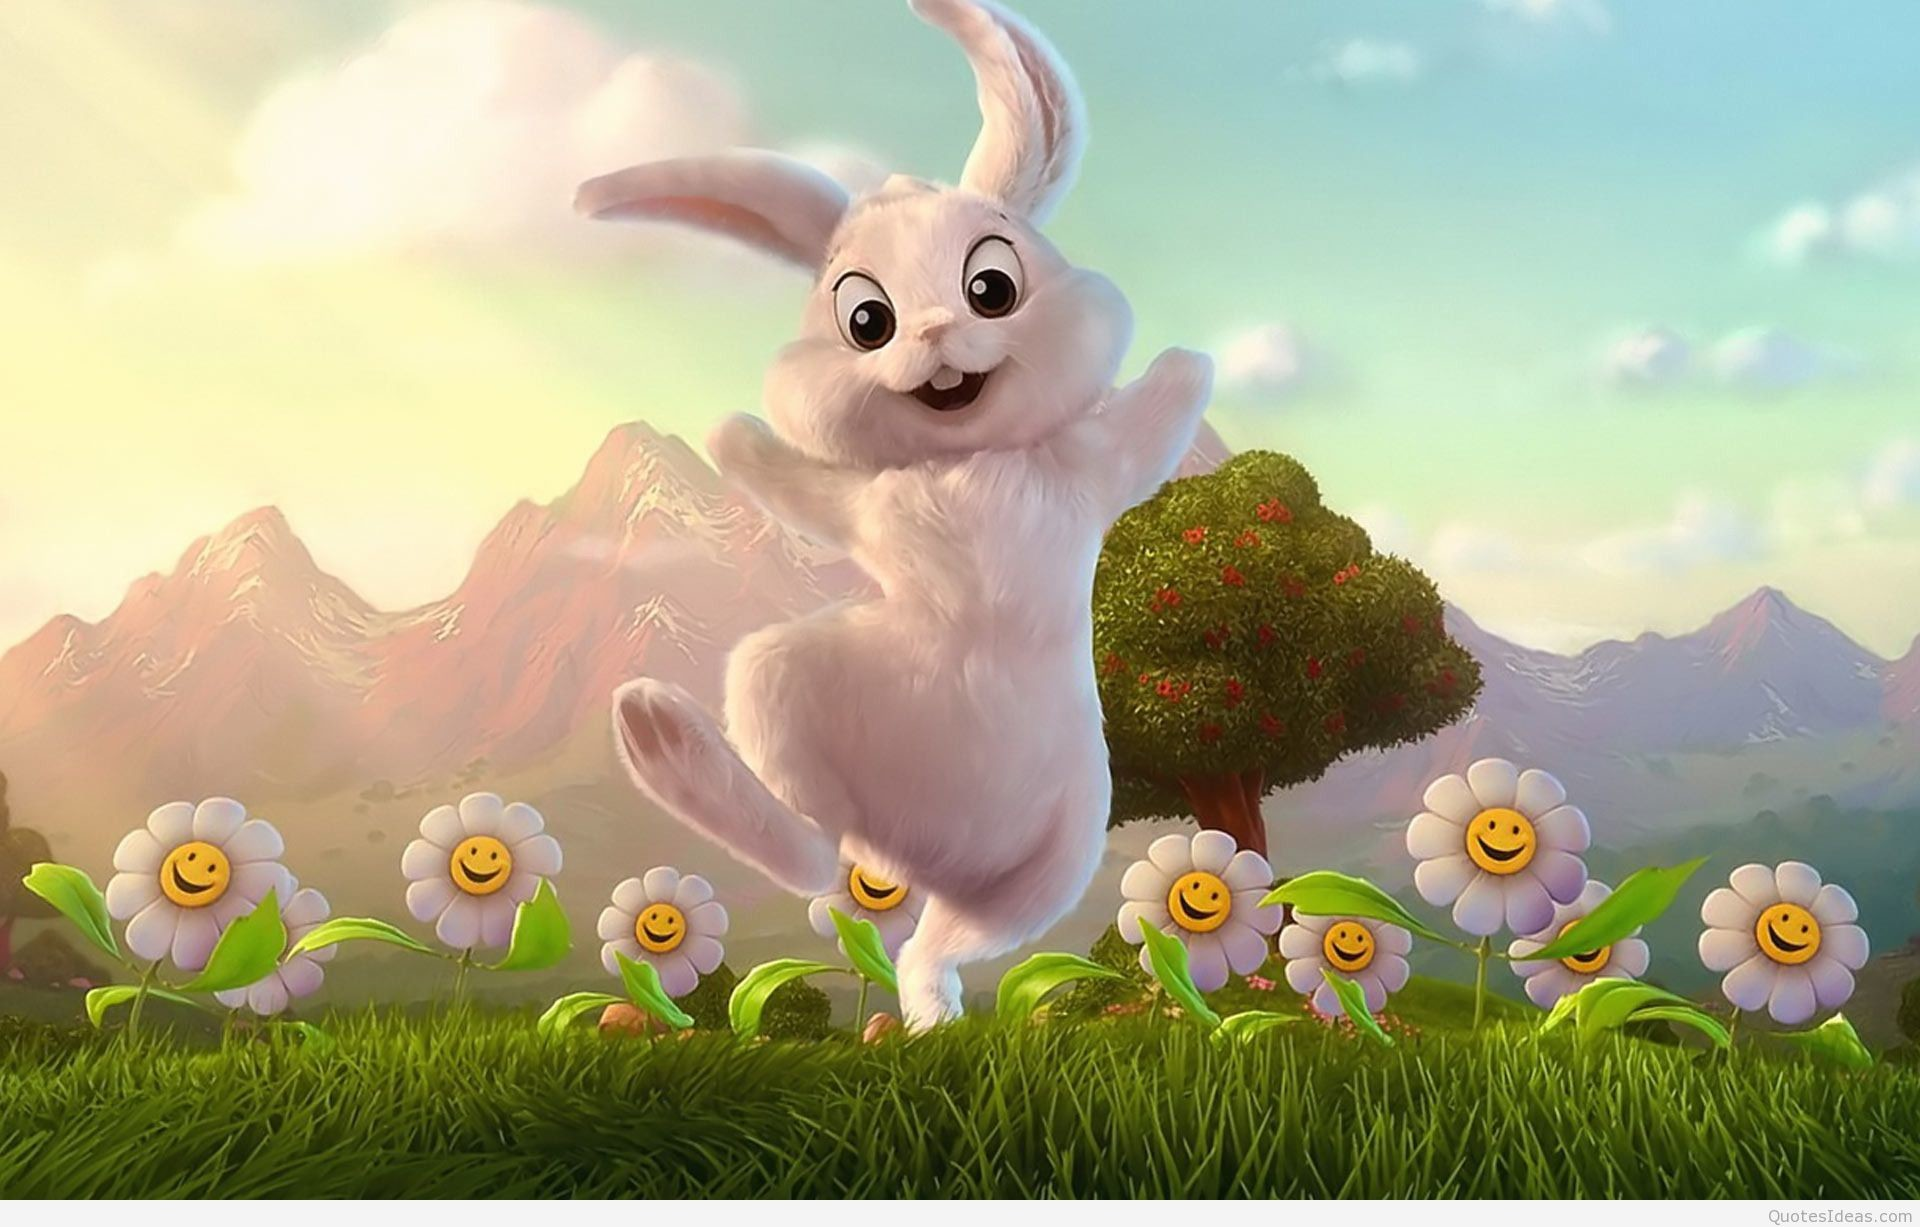 … easter-bunny-holiday-wallpaper-1920×1200-3577 9754012521693bf8f325 …